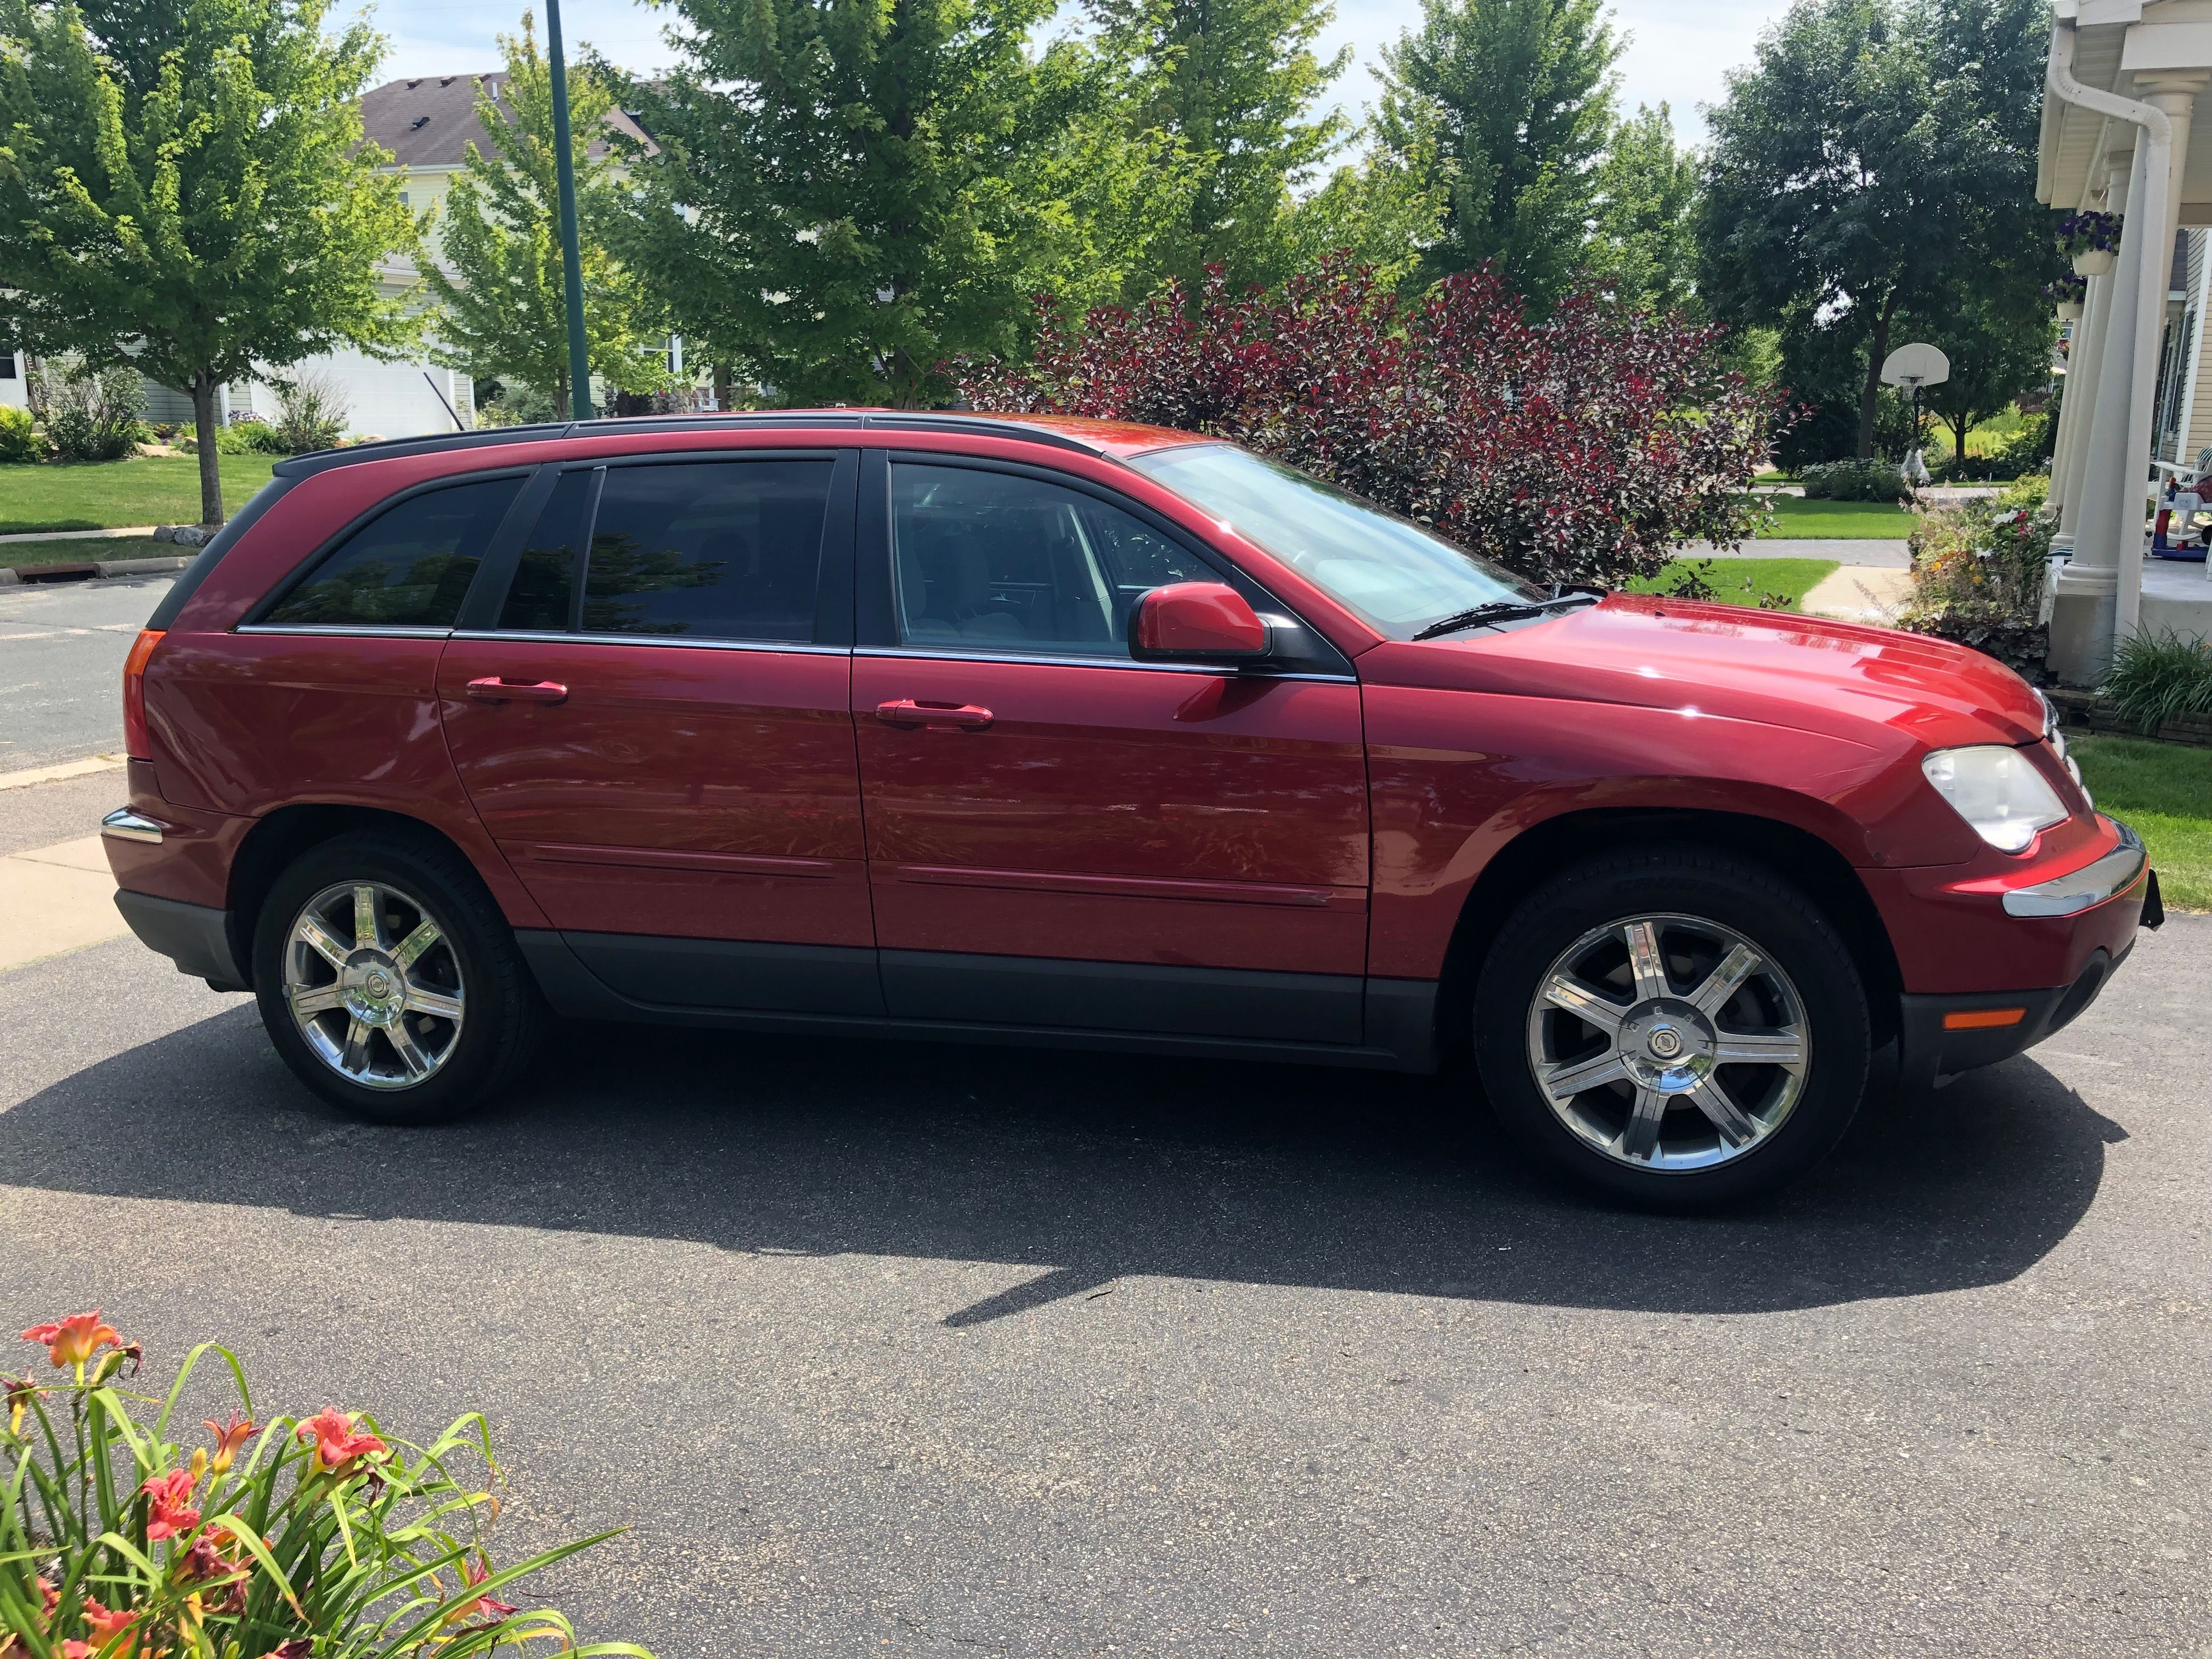 2007 Chrysler Pacifica image 1